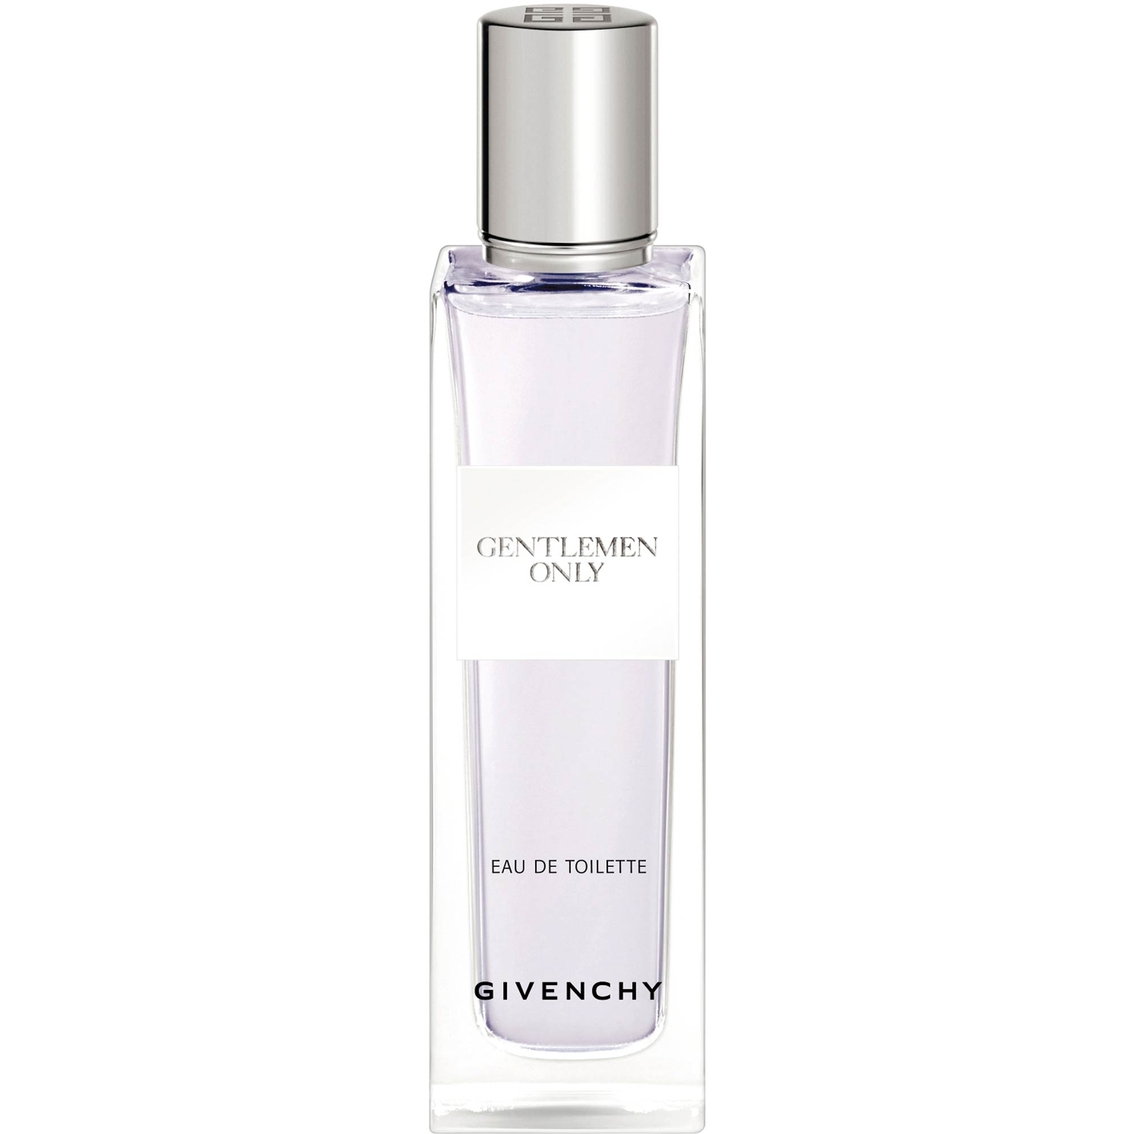 a359c4ecef Givenchy Gentlemen Only Eau De Toilette Spray | Men's Fragrances ...